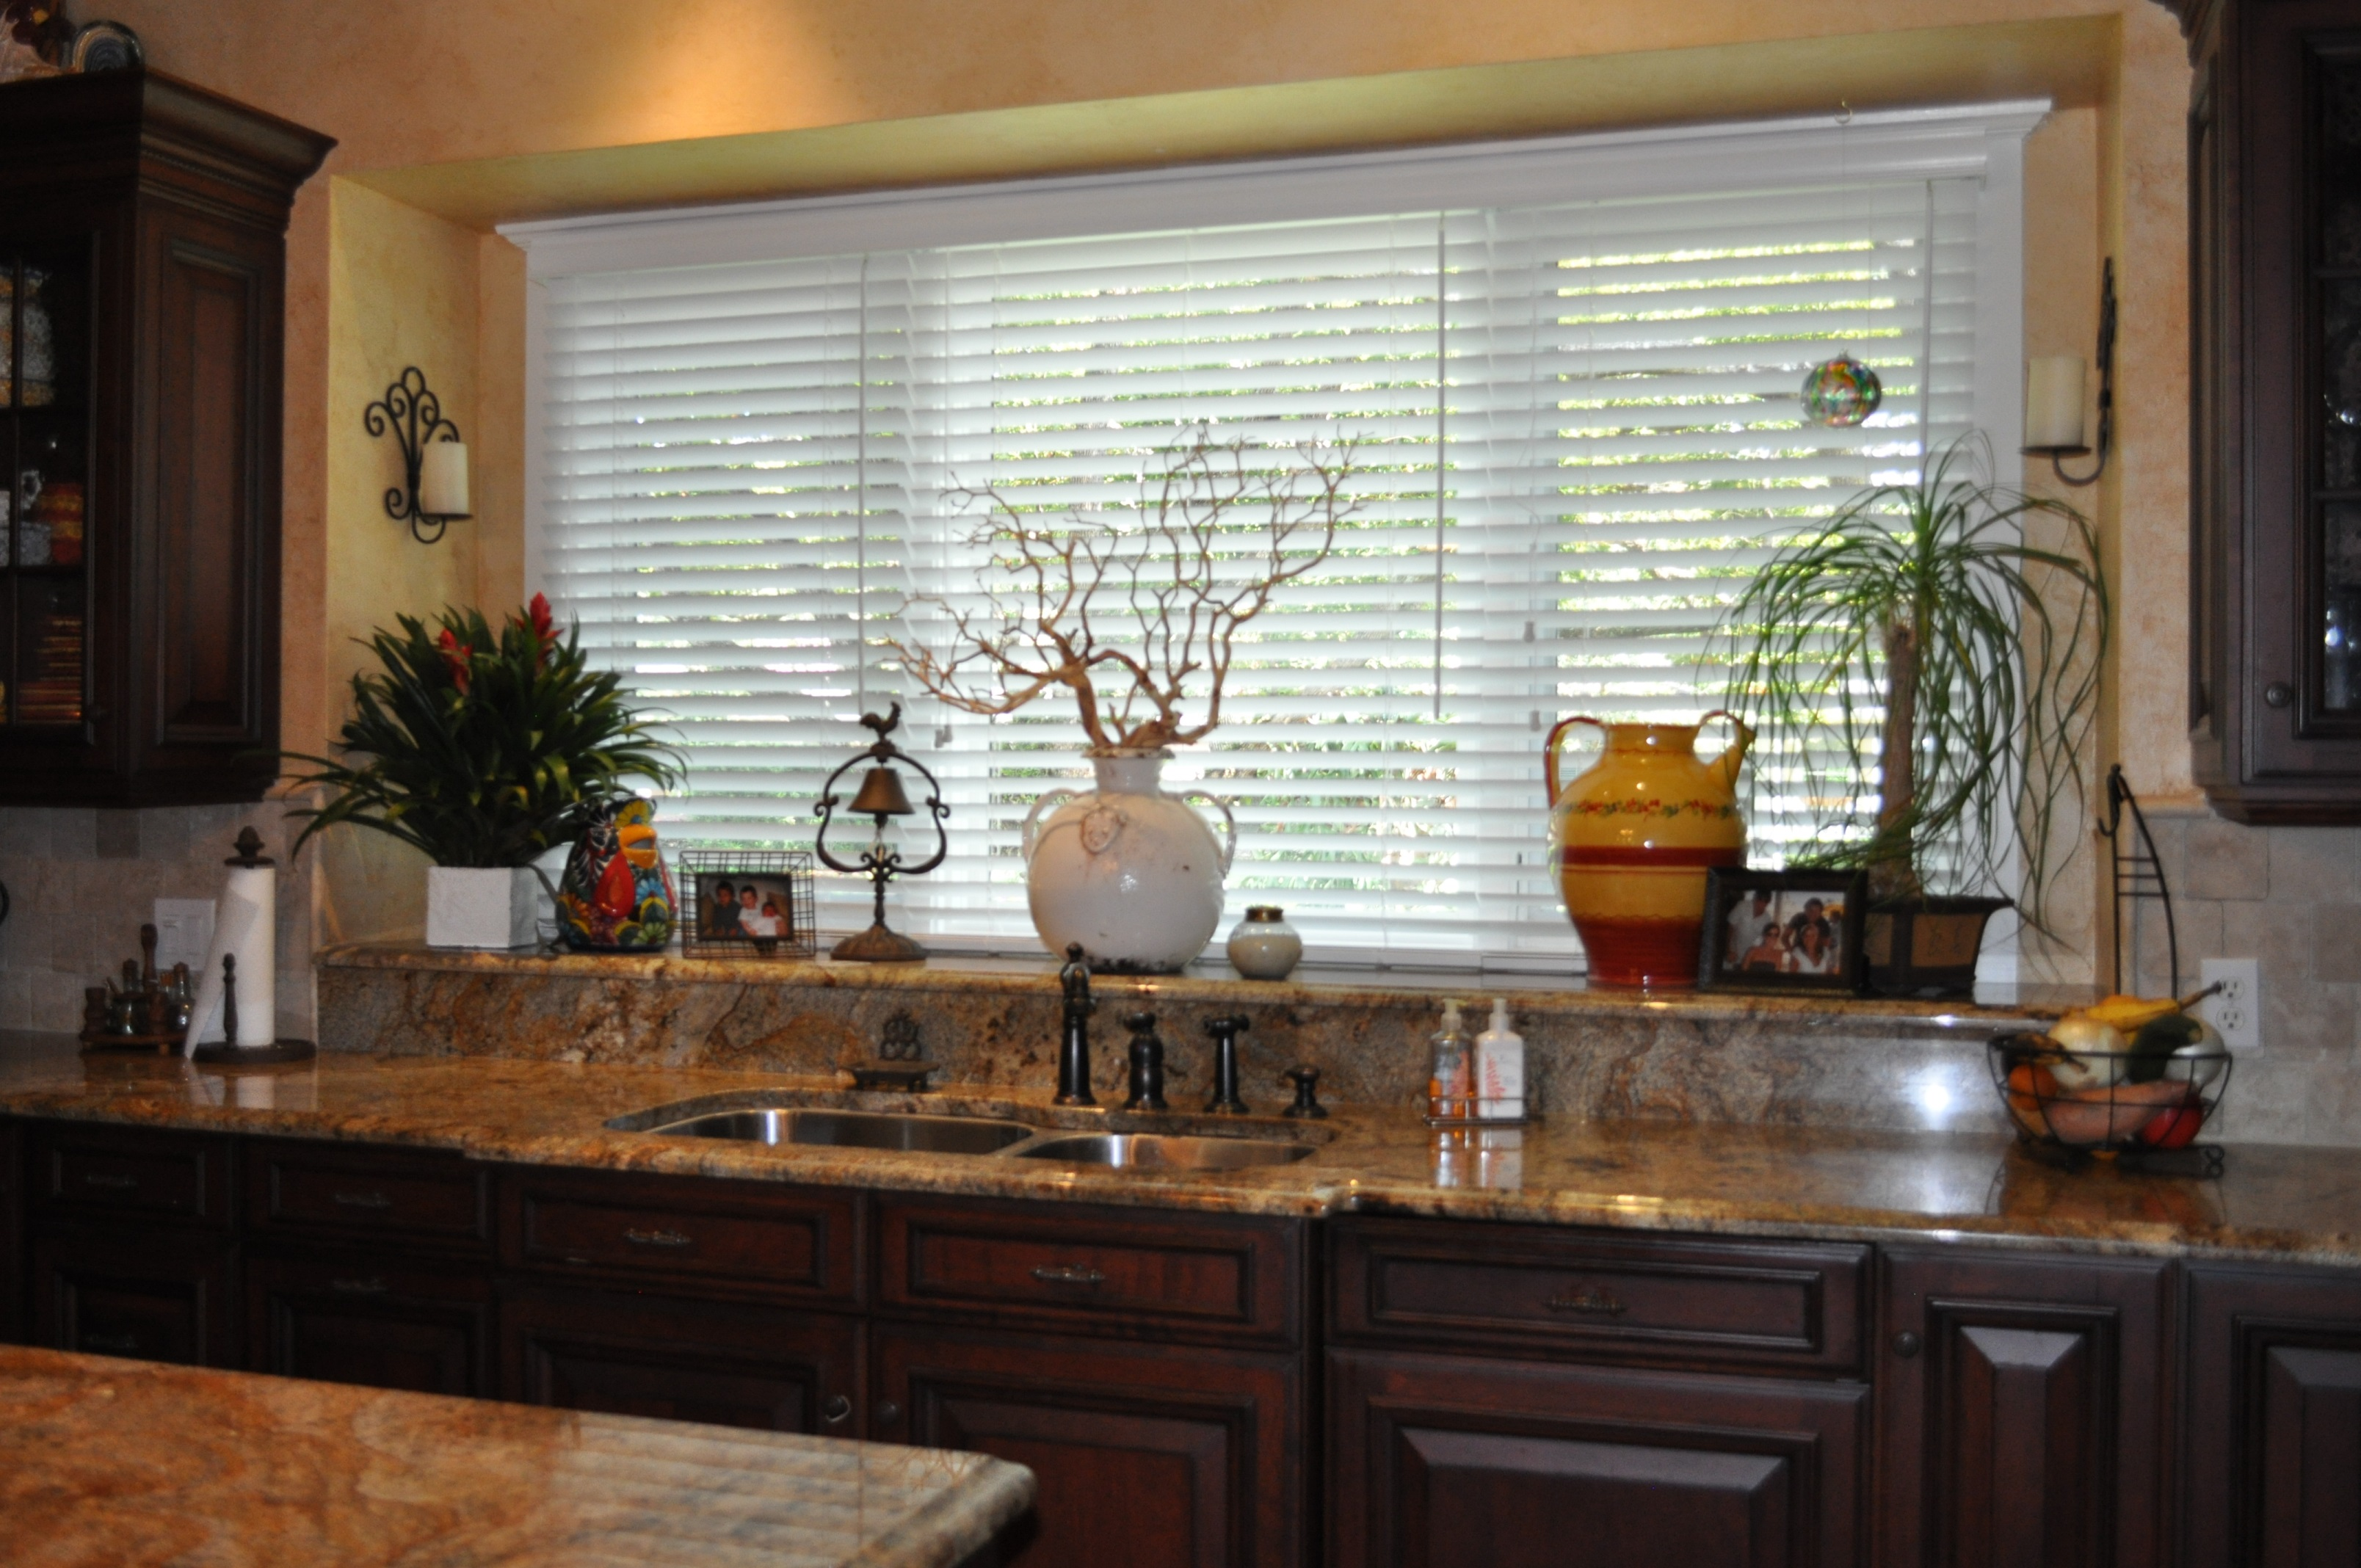 plantation shutters Hillsborough County, window blinds, roller shades